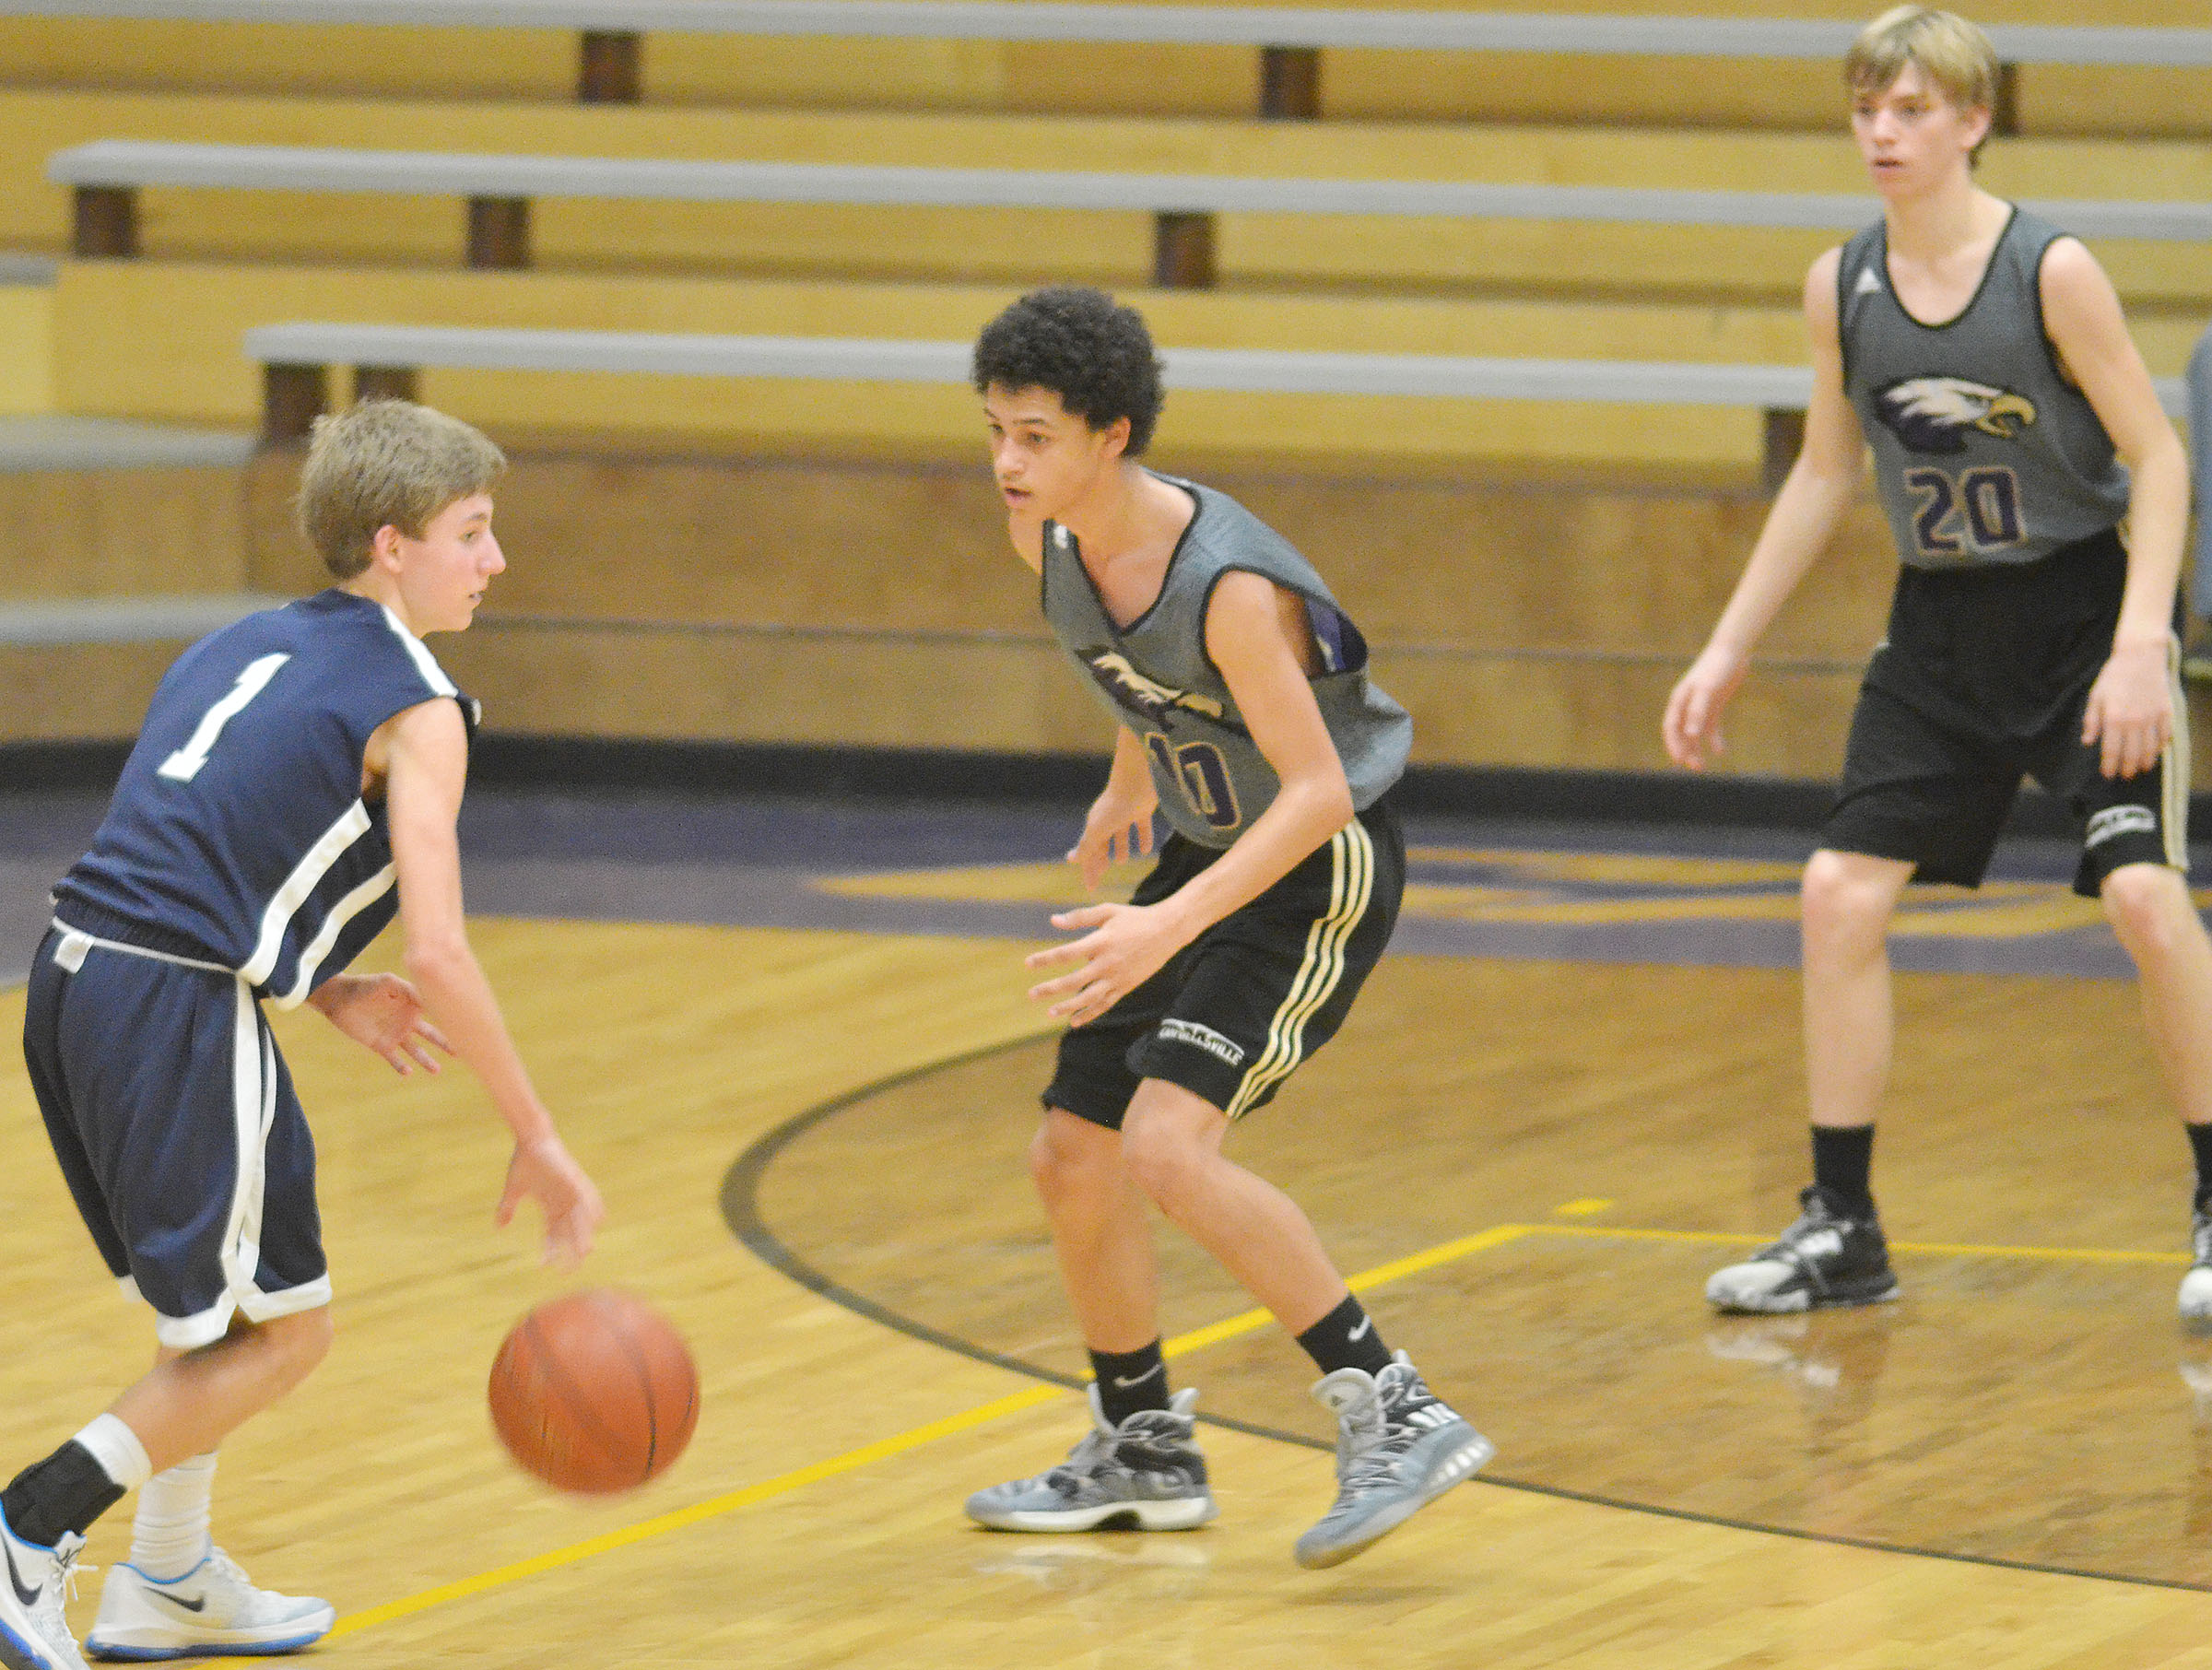 CHS freshman Mikael Vaught, center, and Campbellsville Middle School eighth-grader Arren Hash play defense.